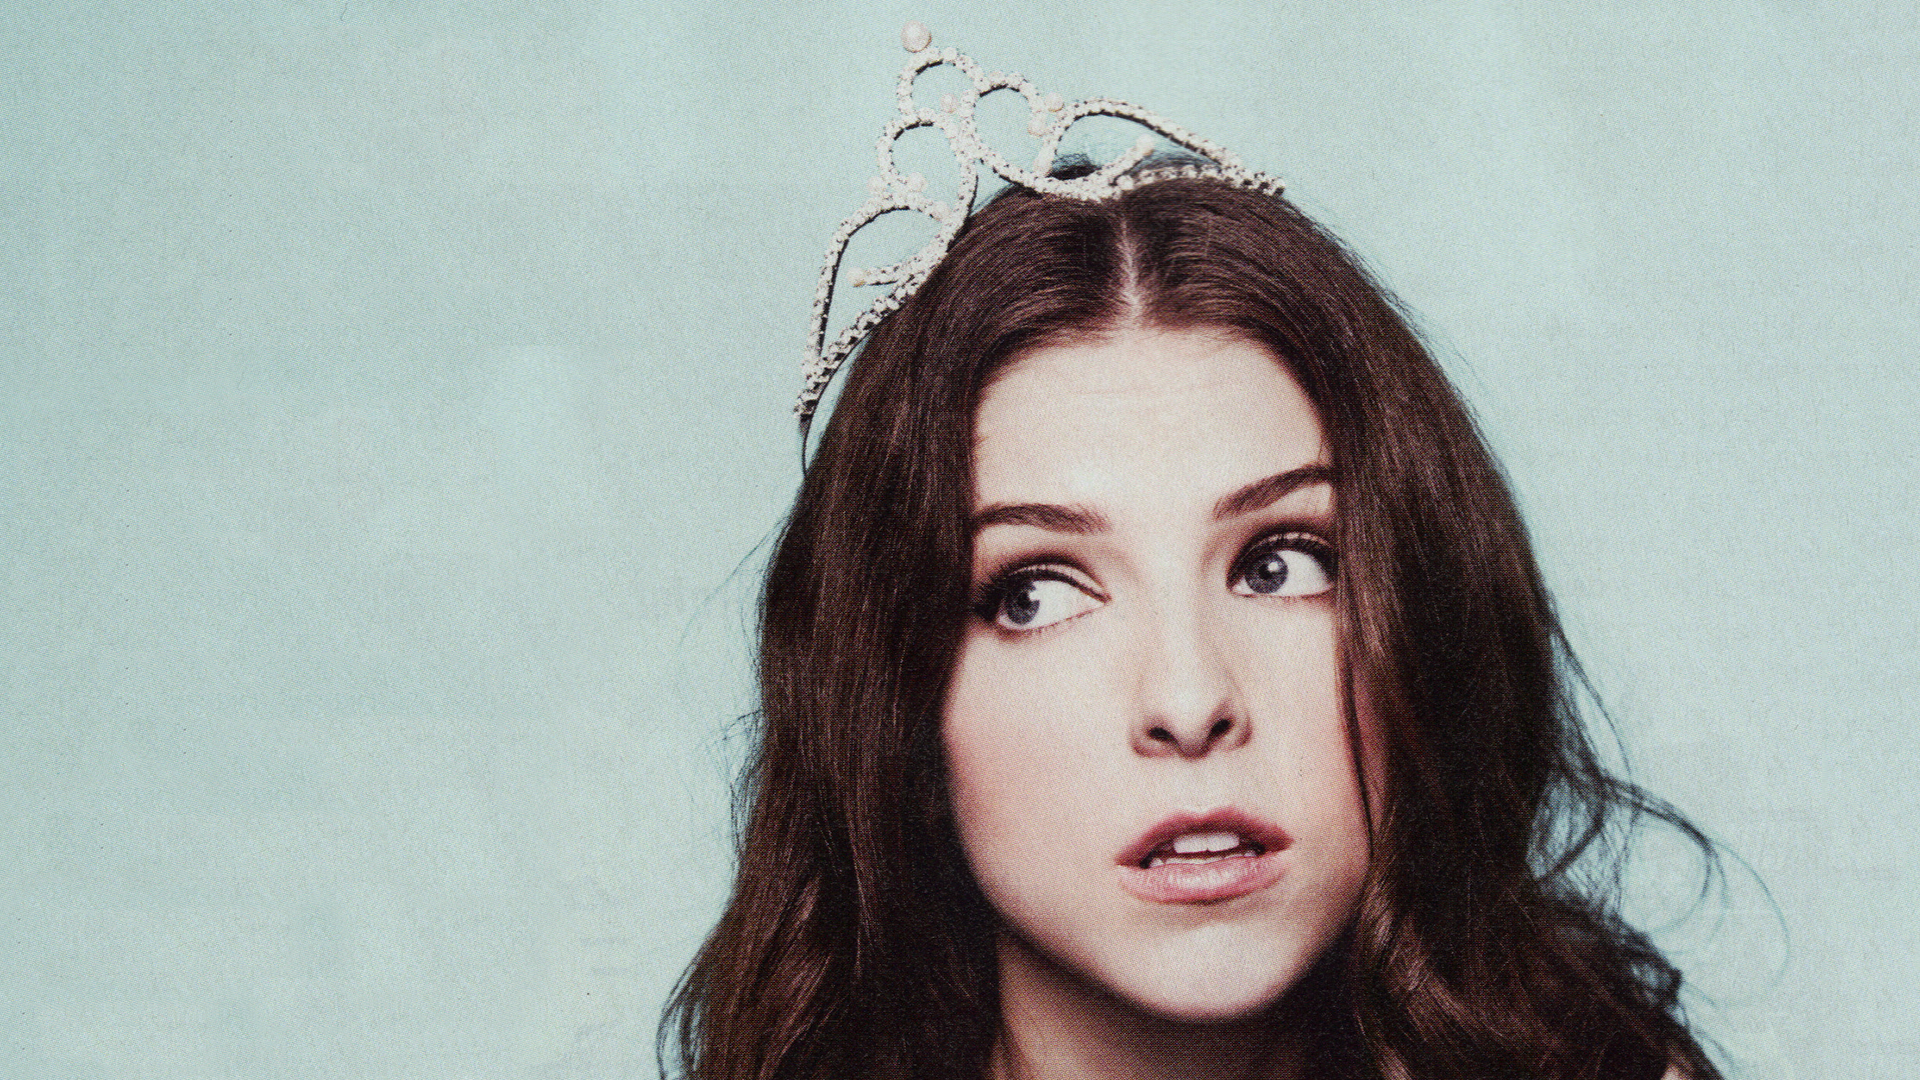 anna-kendrick-HD-wallpaper-wp3602613